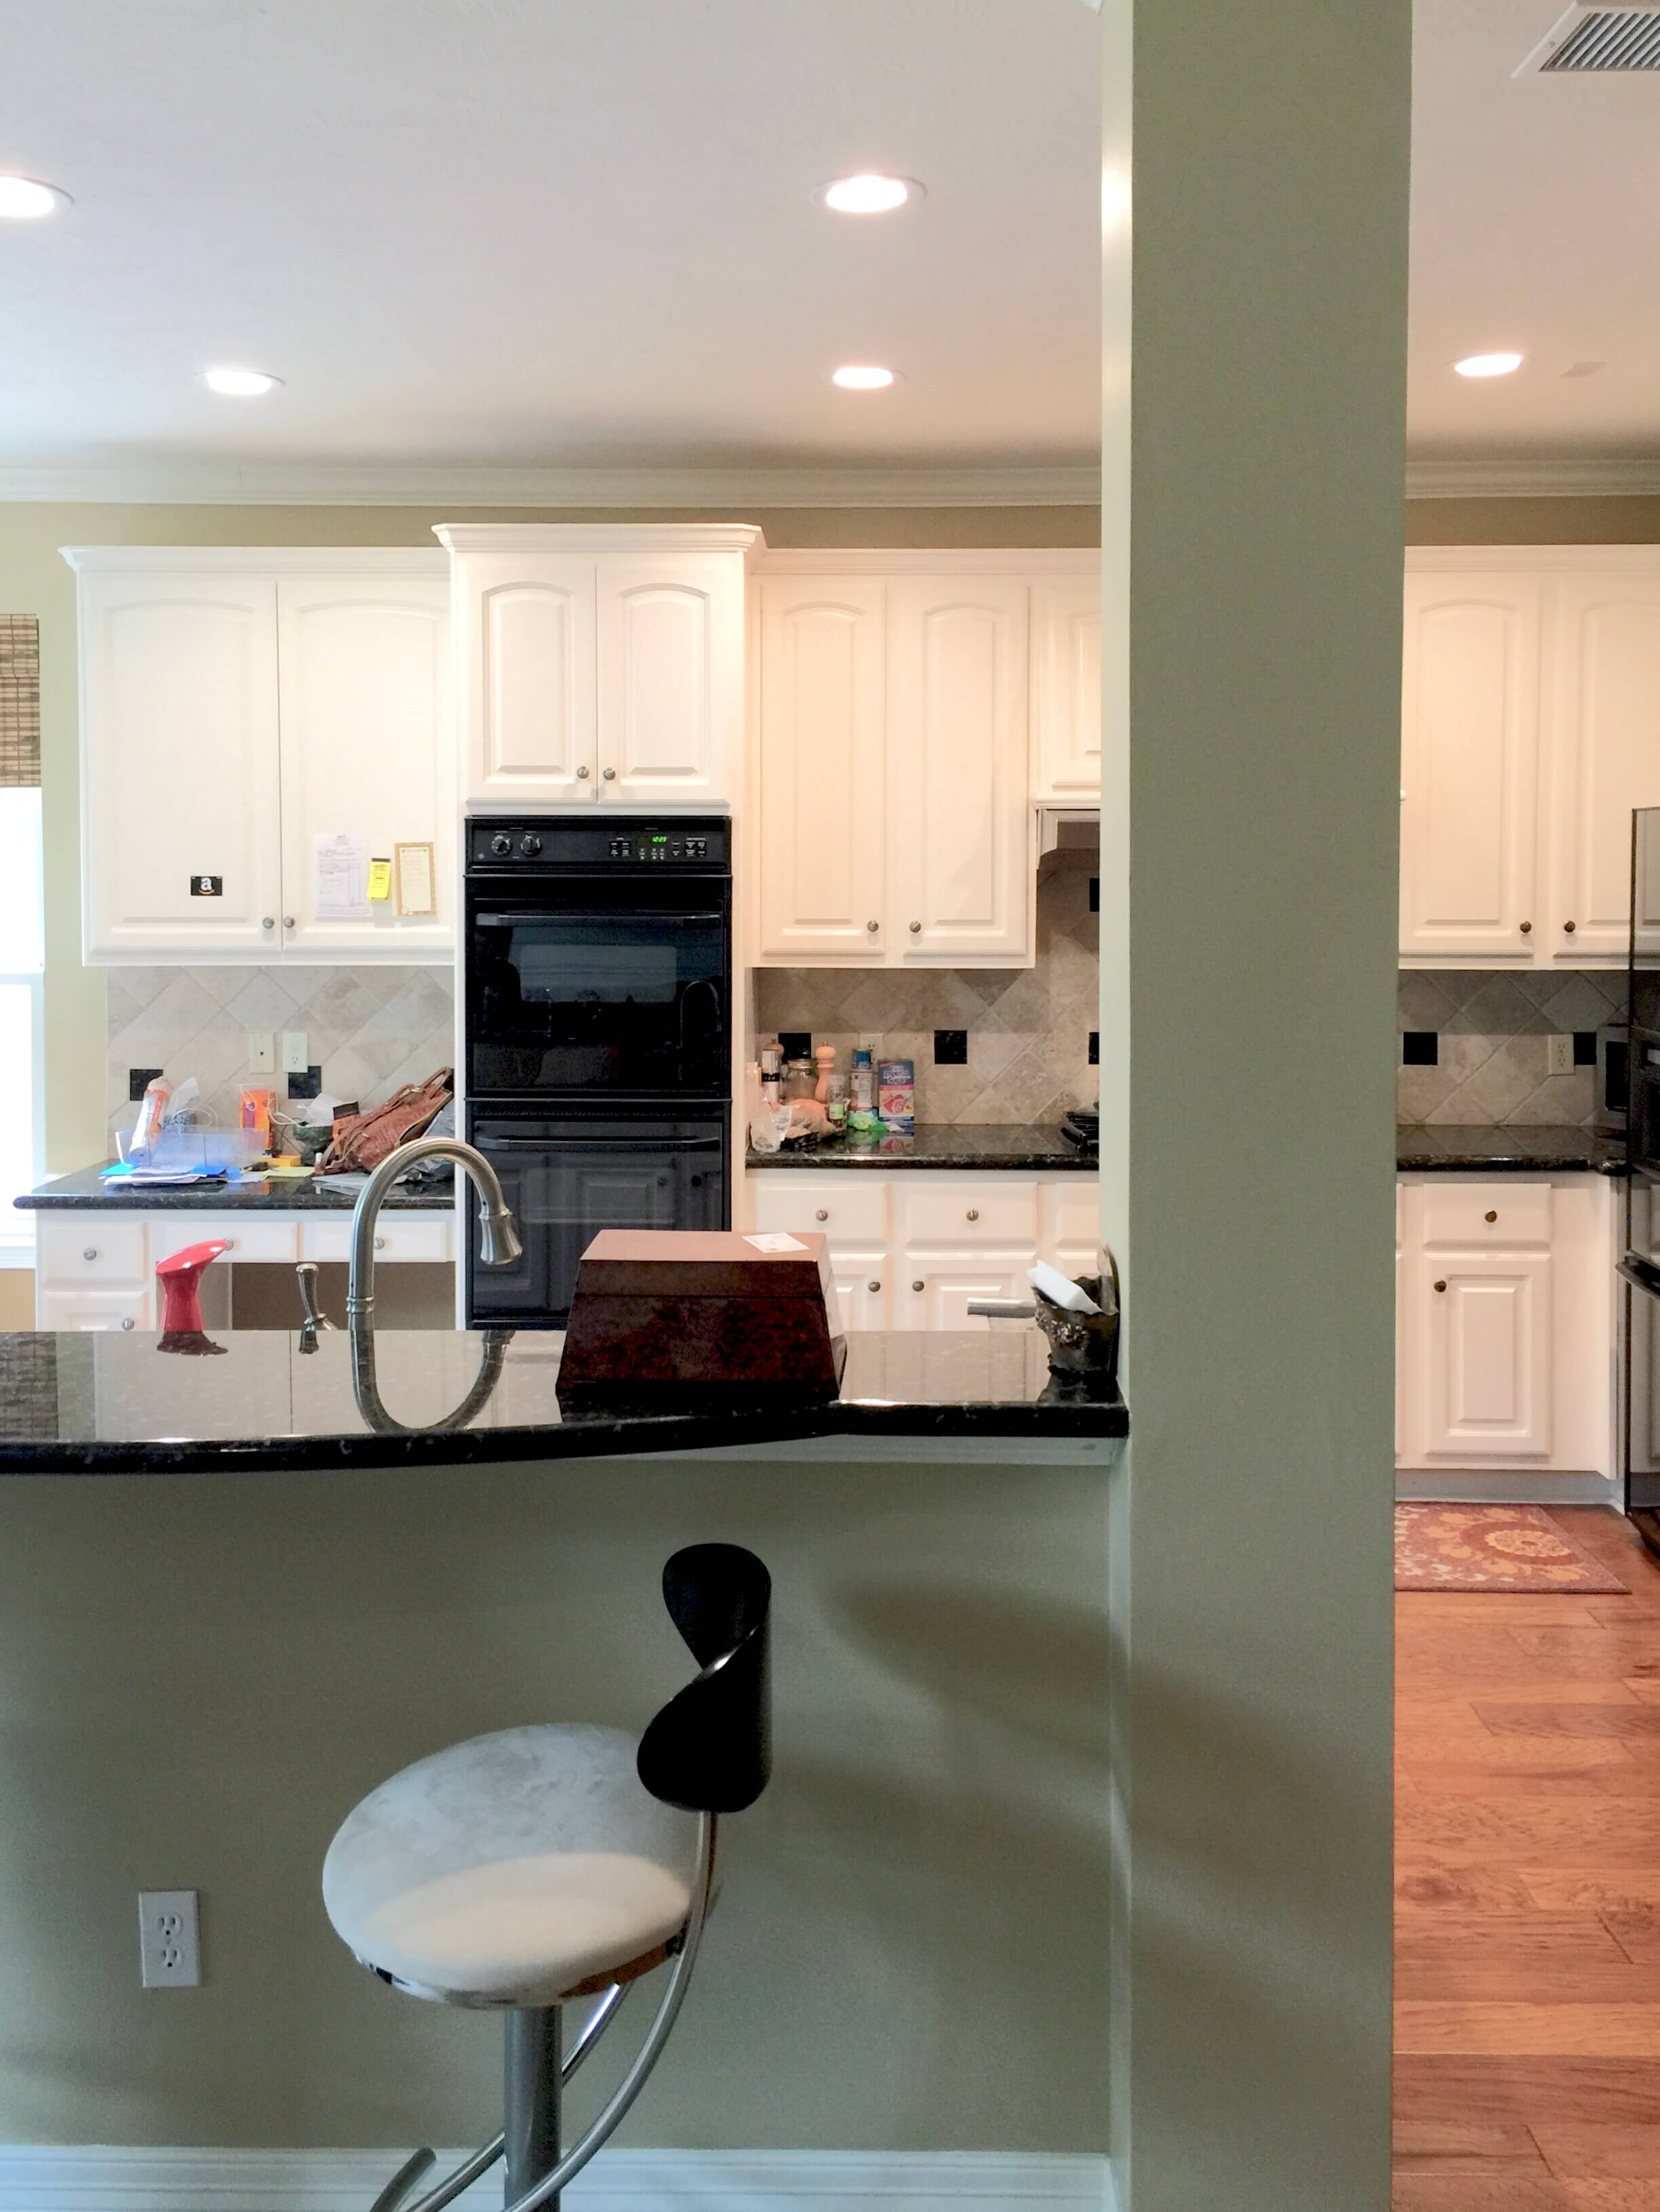 BEFORE - Bar front at kitchen with painted sheetrock face below the countertop.